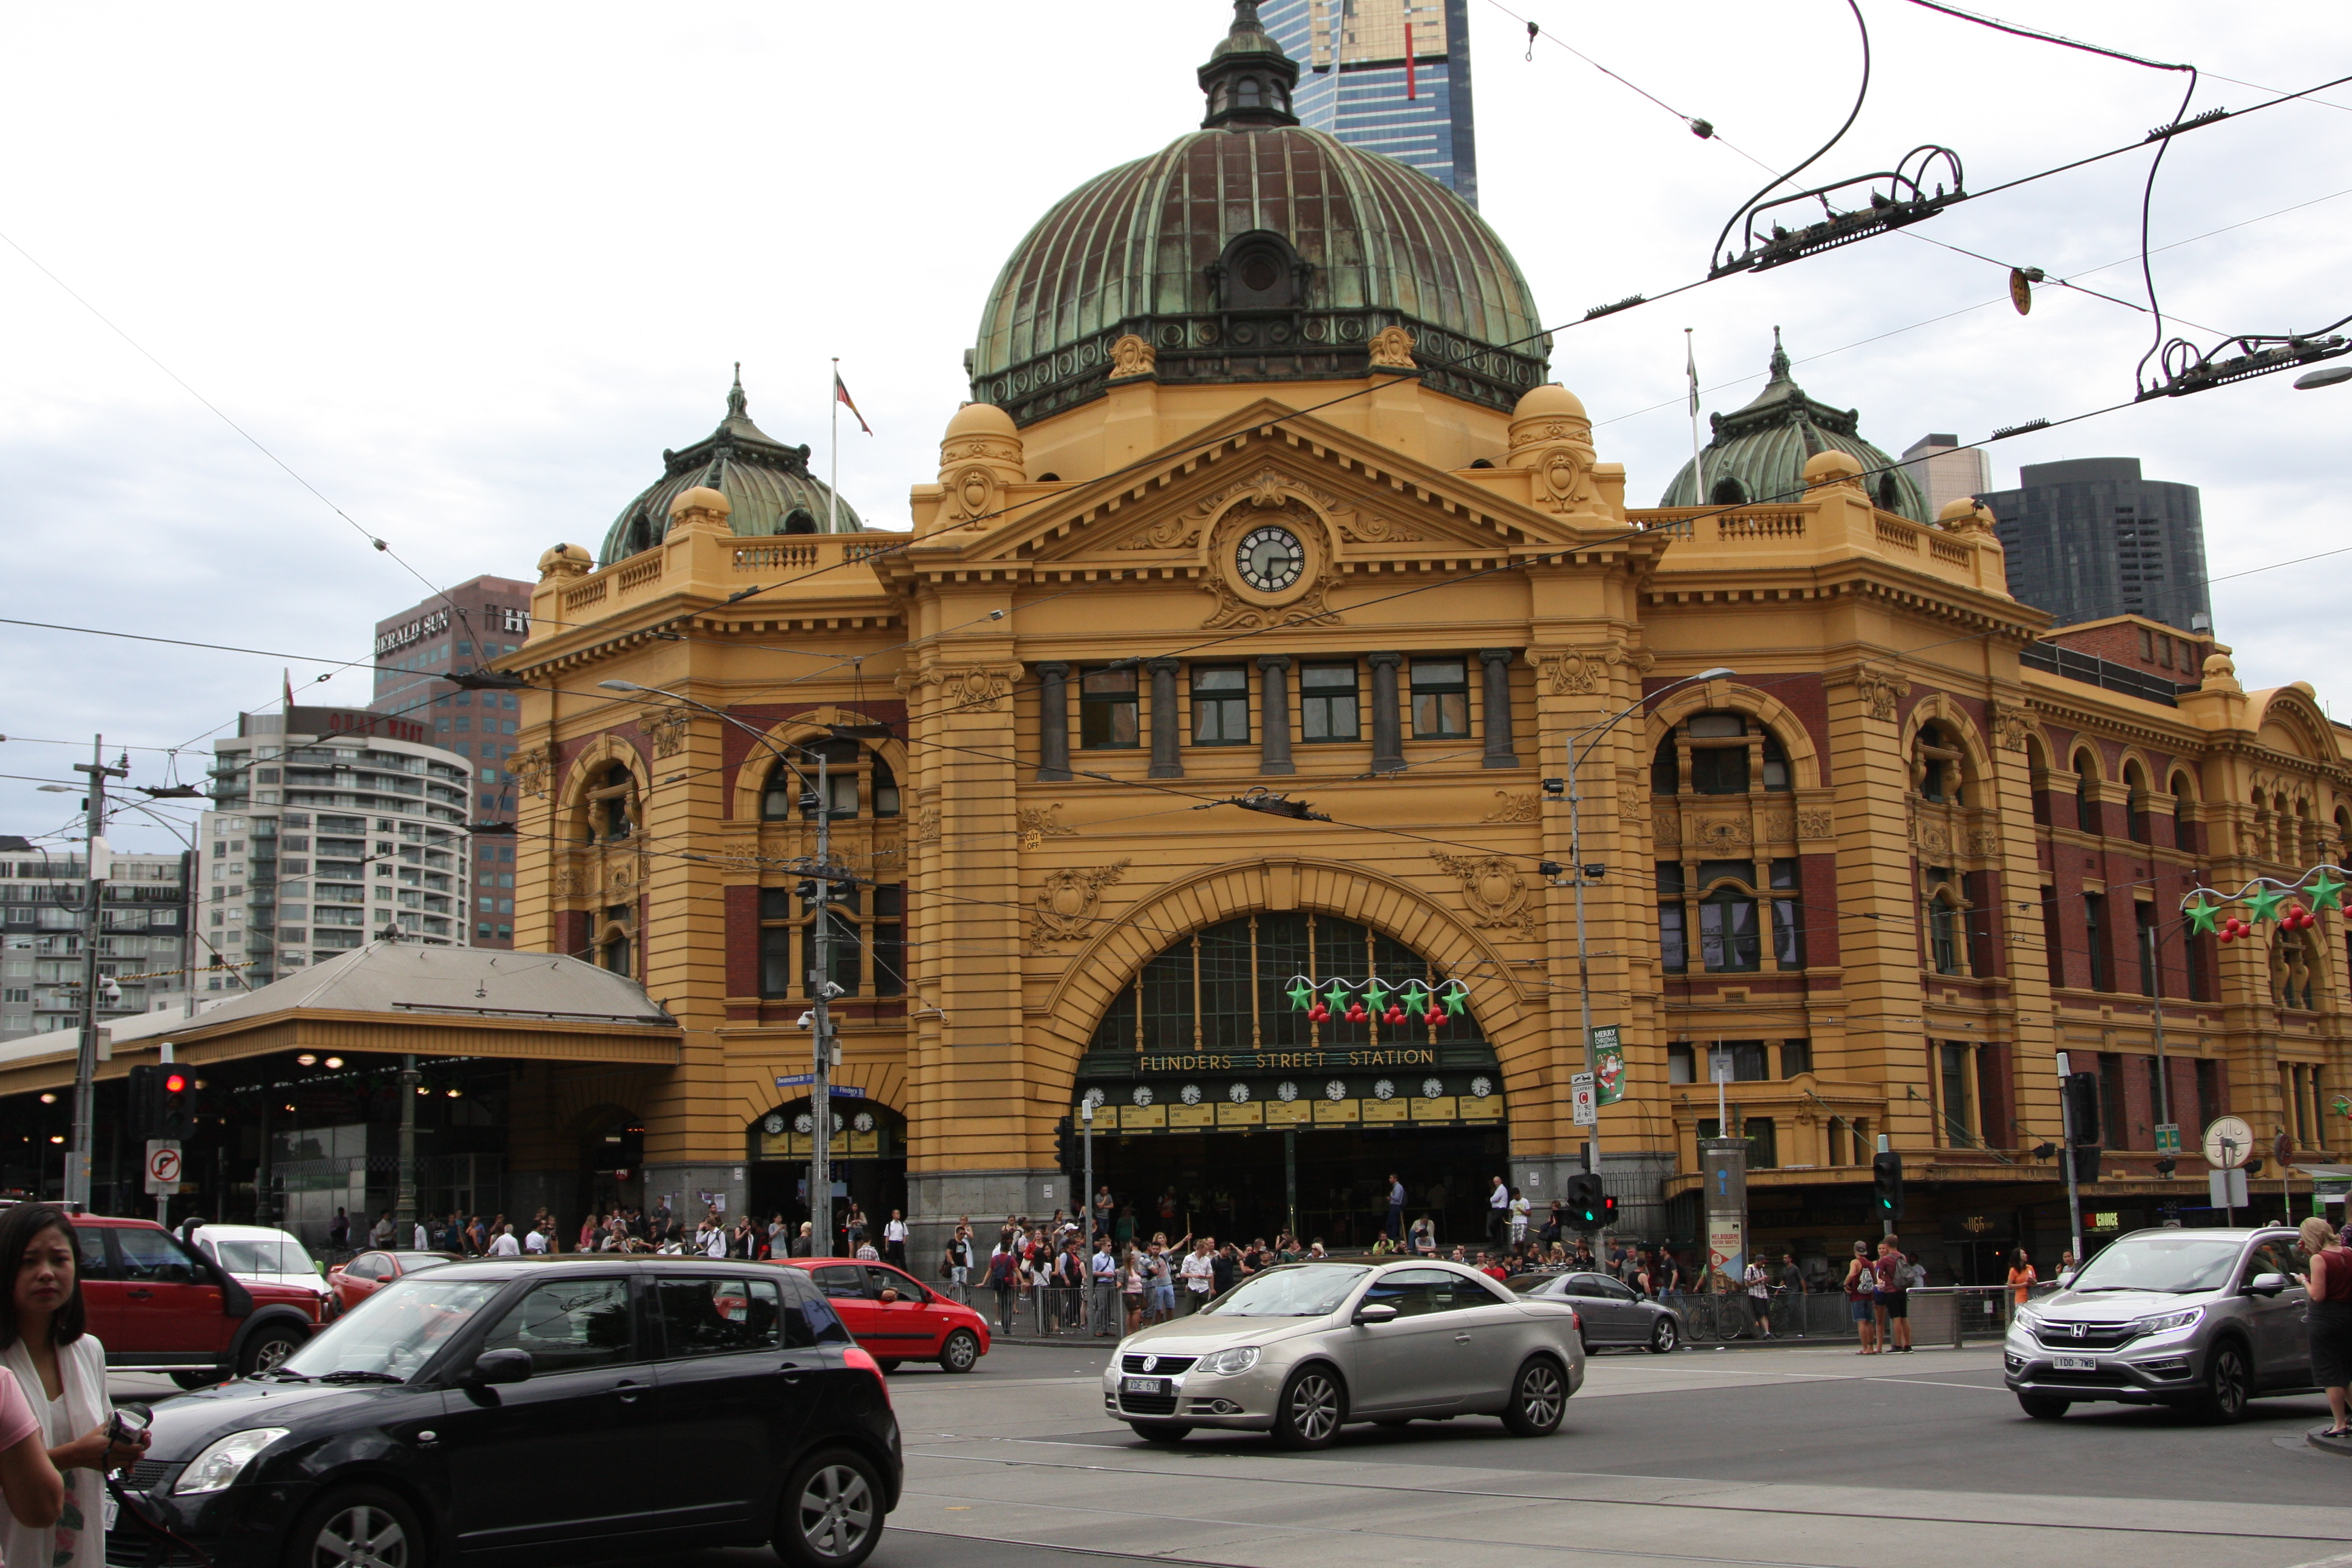 in front of the Flinders Street Train Station with cars and a few Christmas decorations